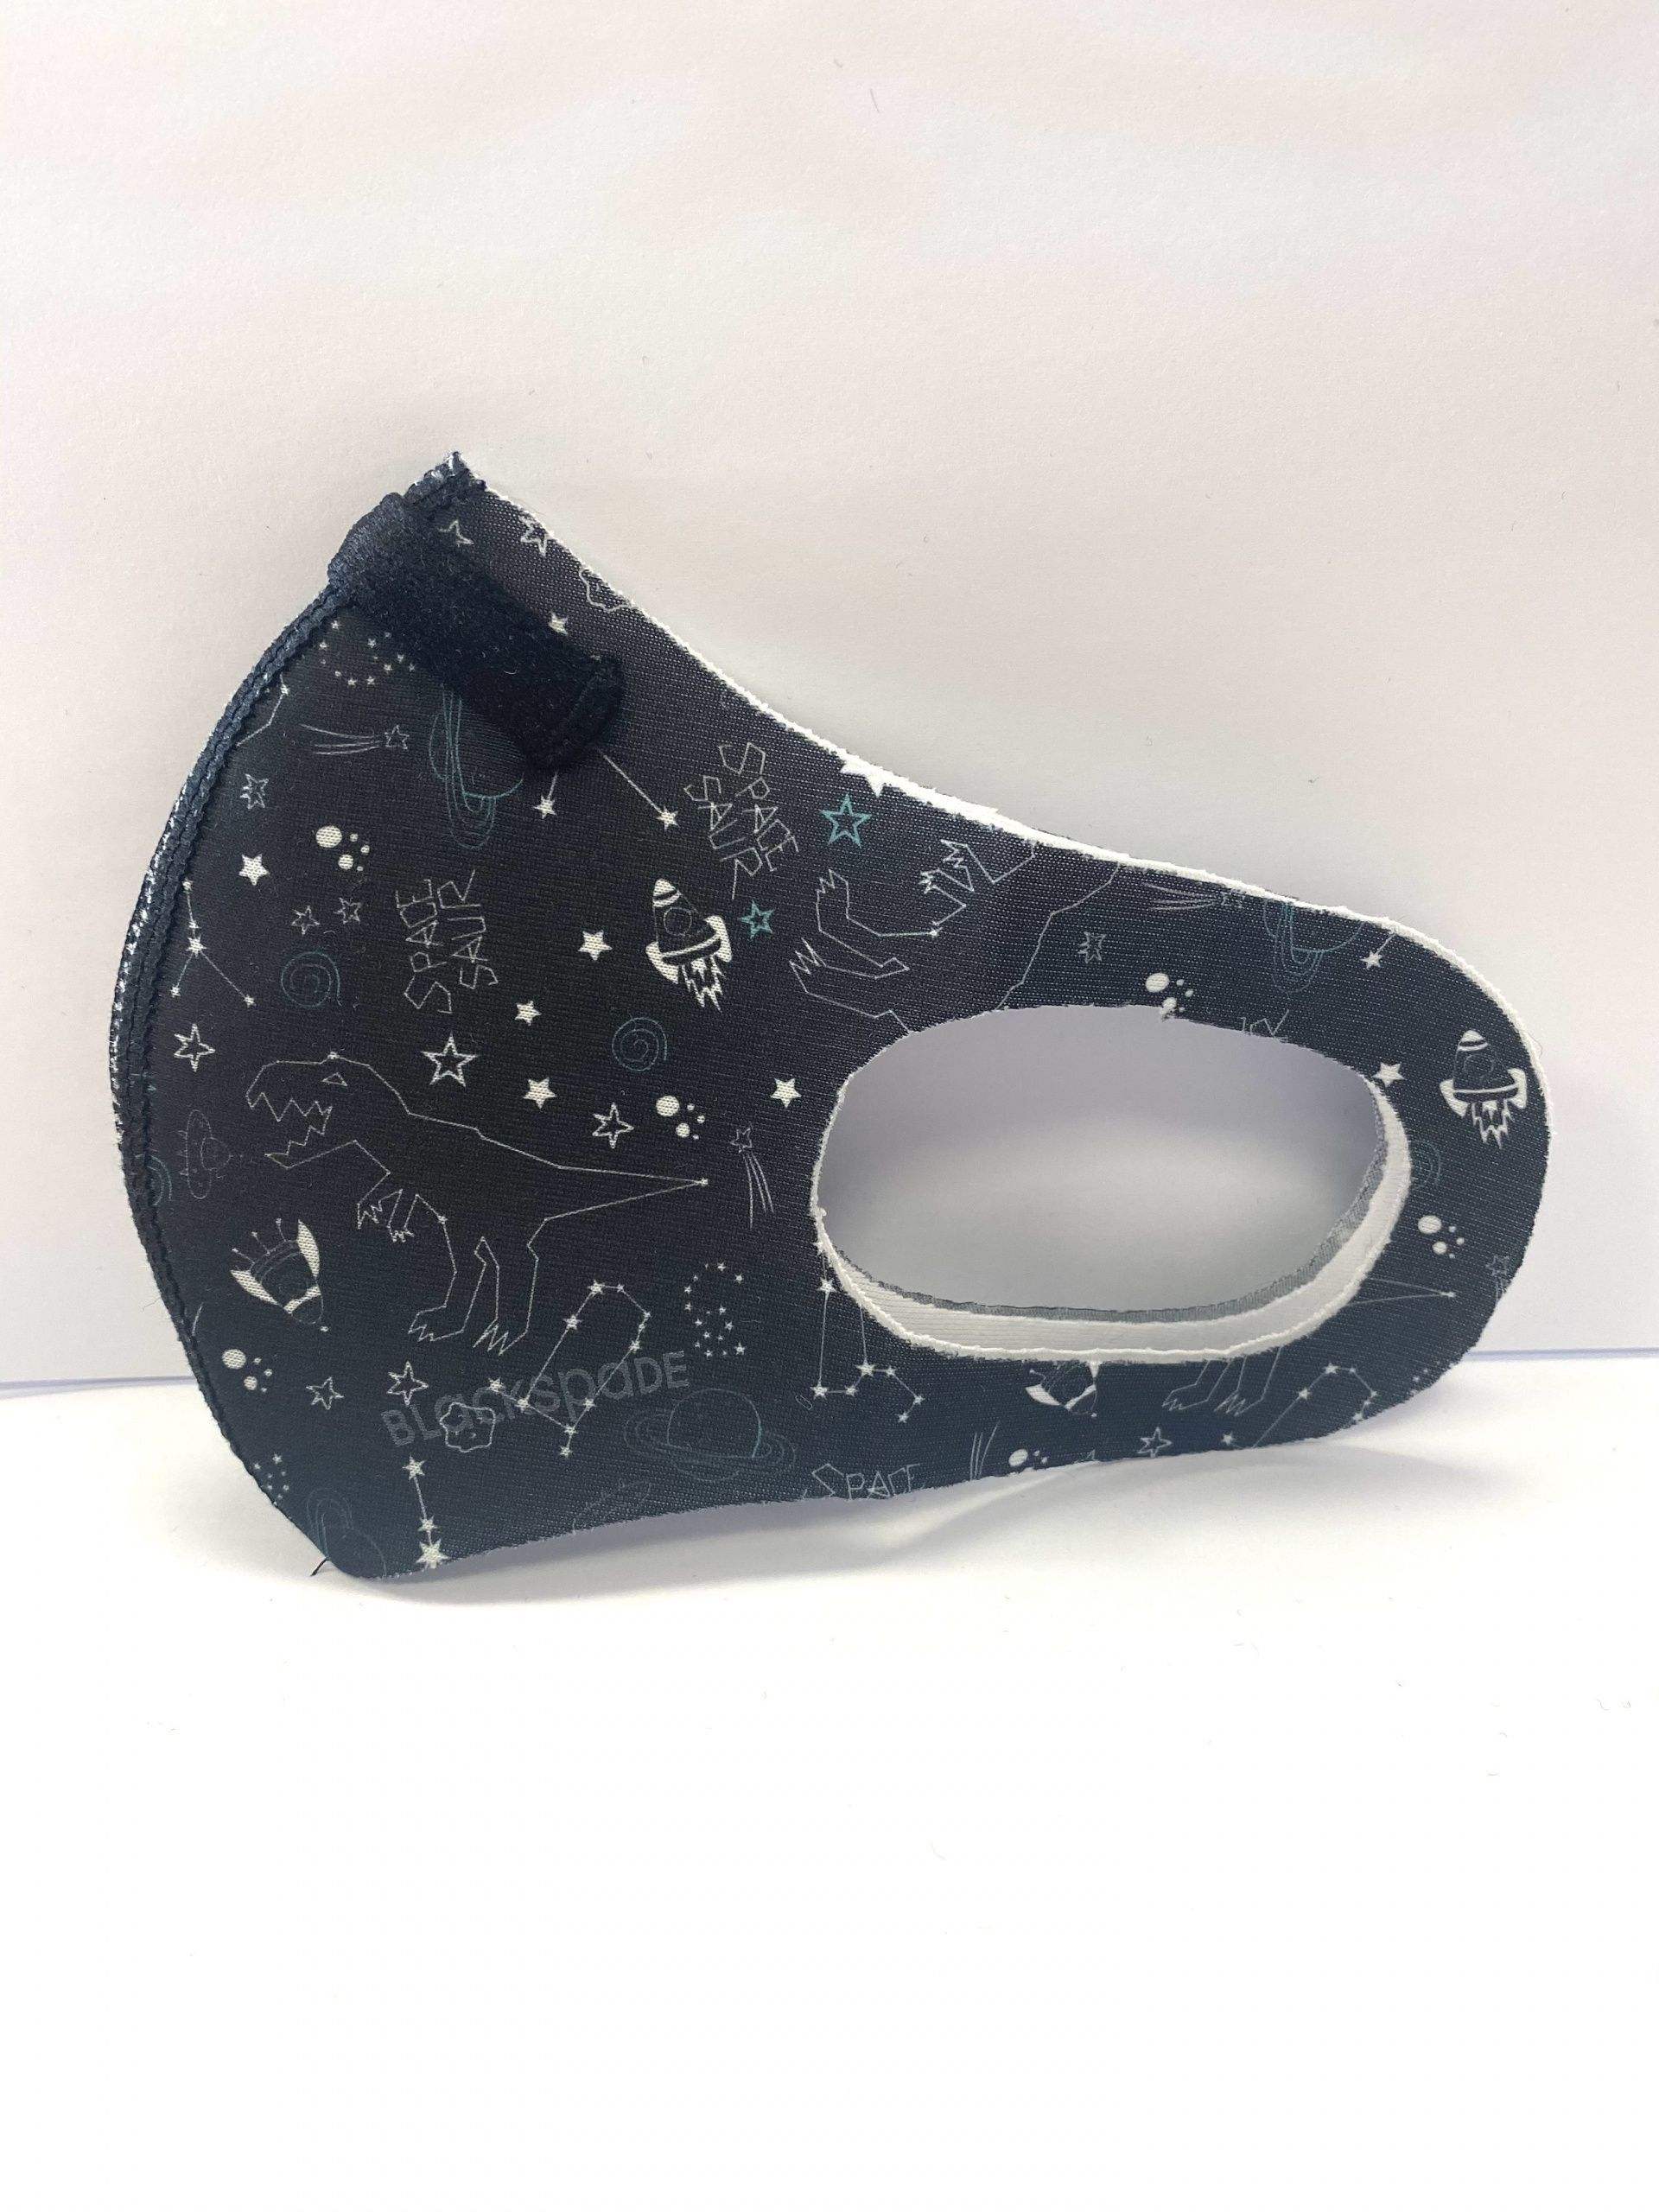 MASCARILLA INFANTIL MOD. SPACE BLACKSPADE